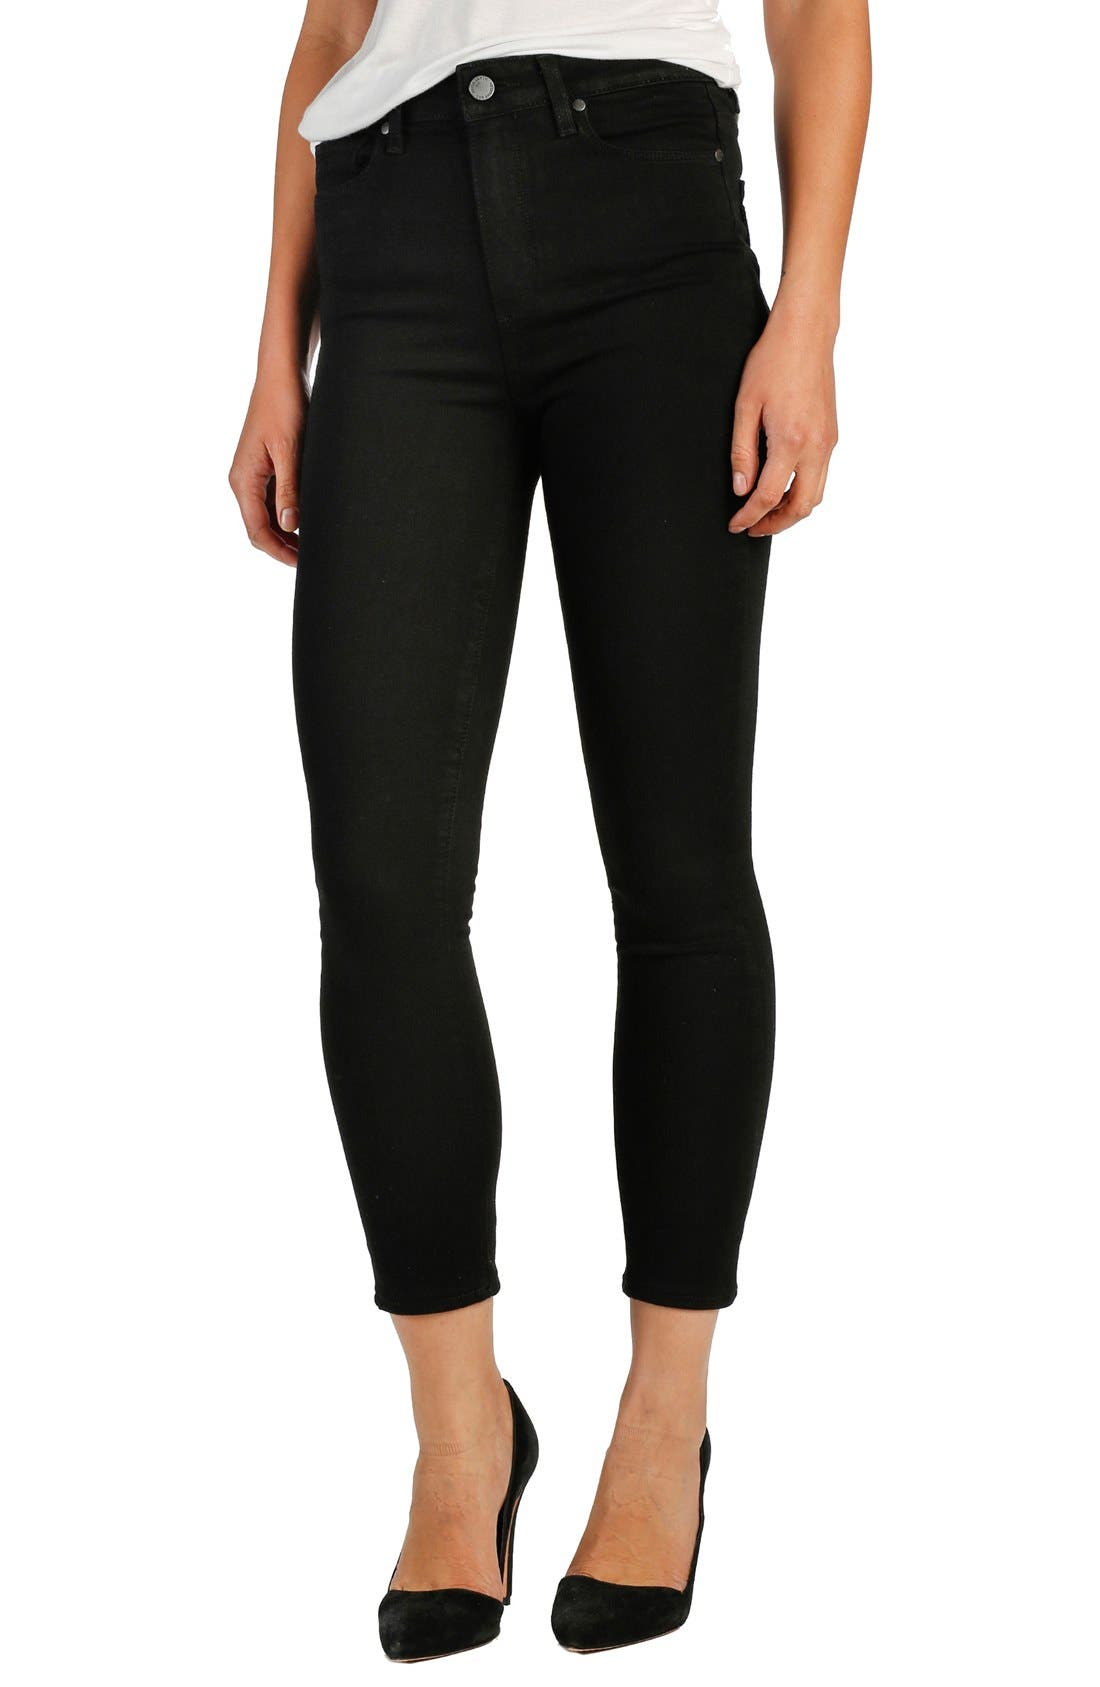 Main Image - PAIGE Transcend - Margot High Waist Crop Ultra Skinny Jeans (Black Shadow)